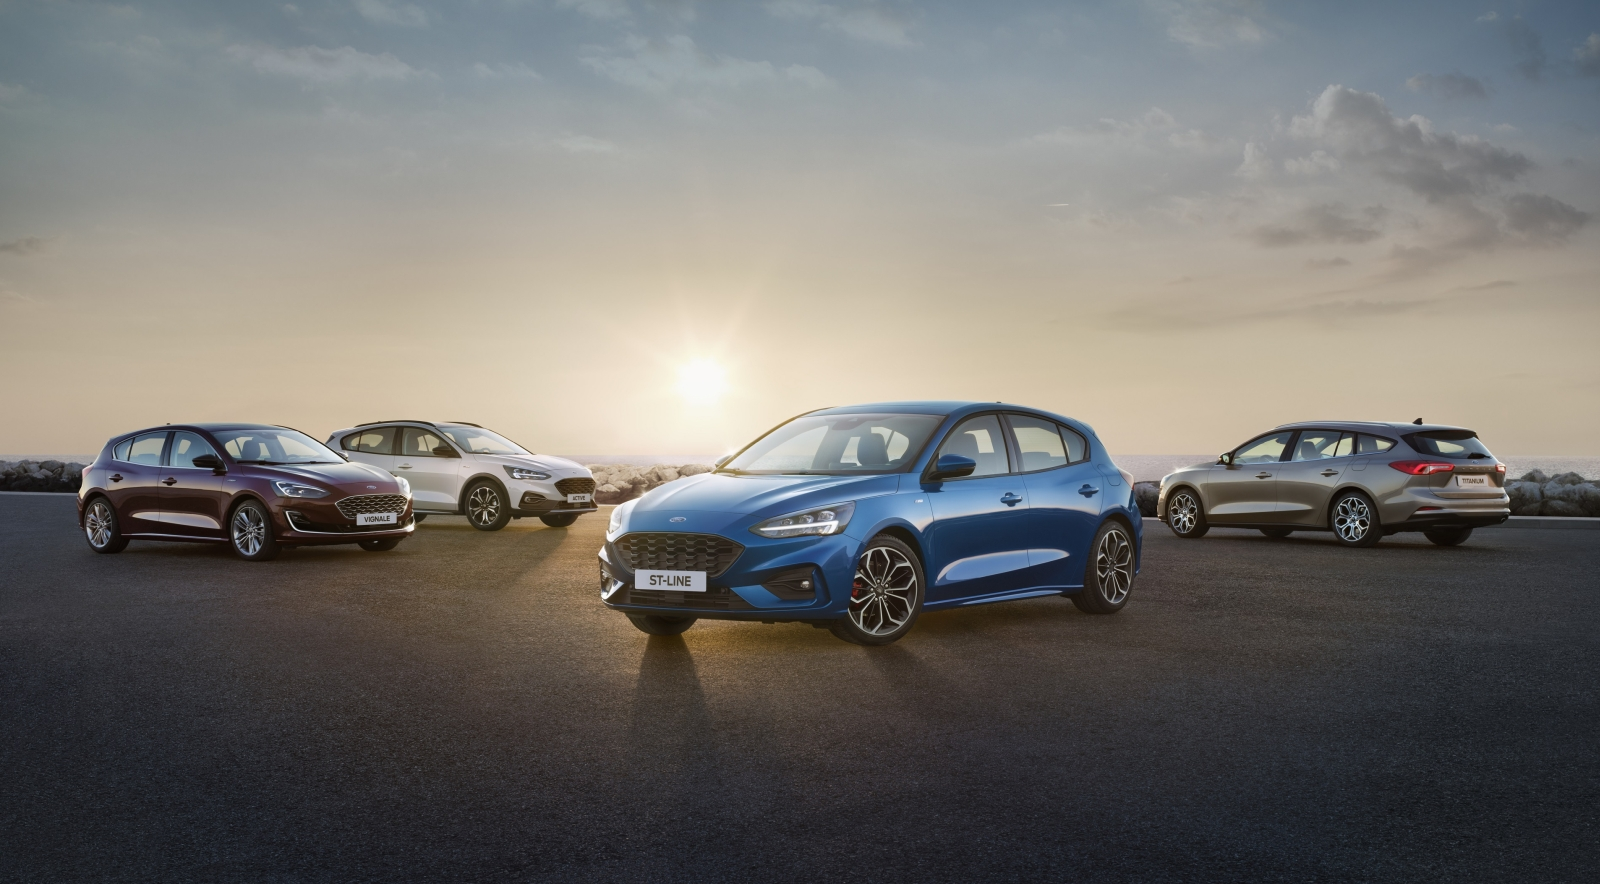 Ford Focus Family